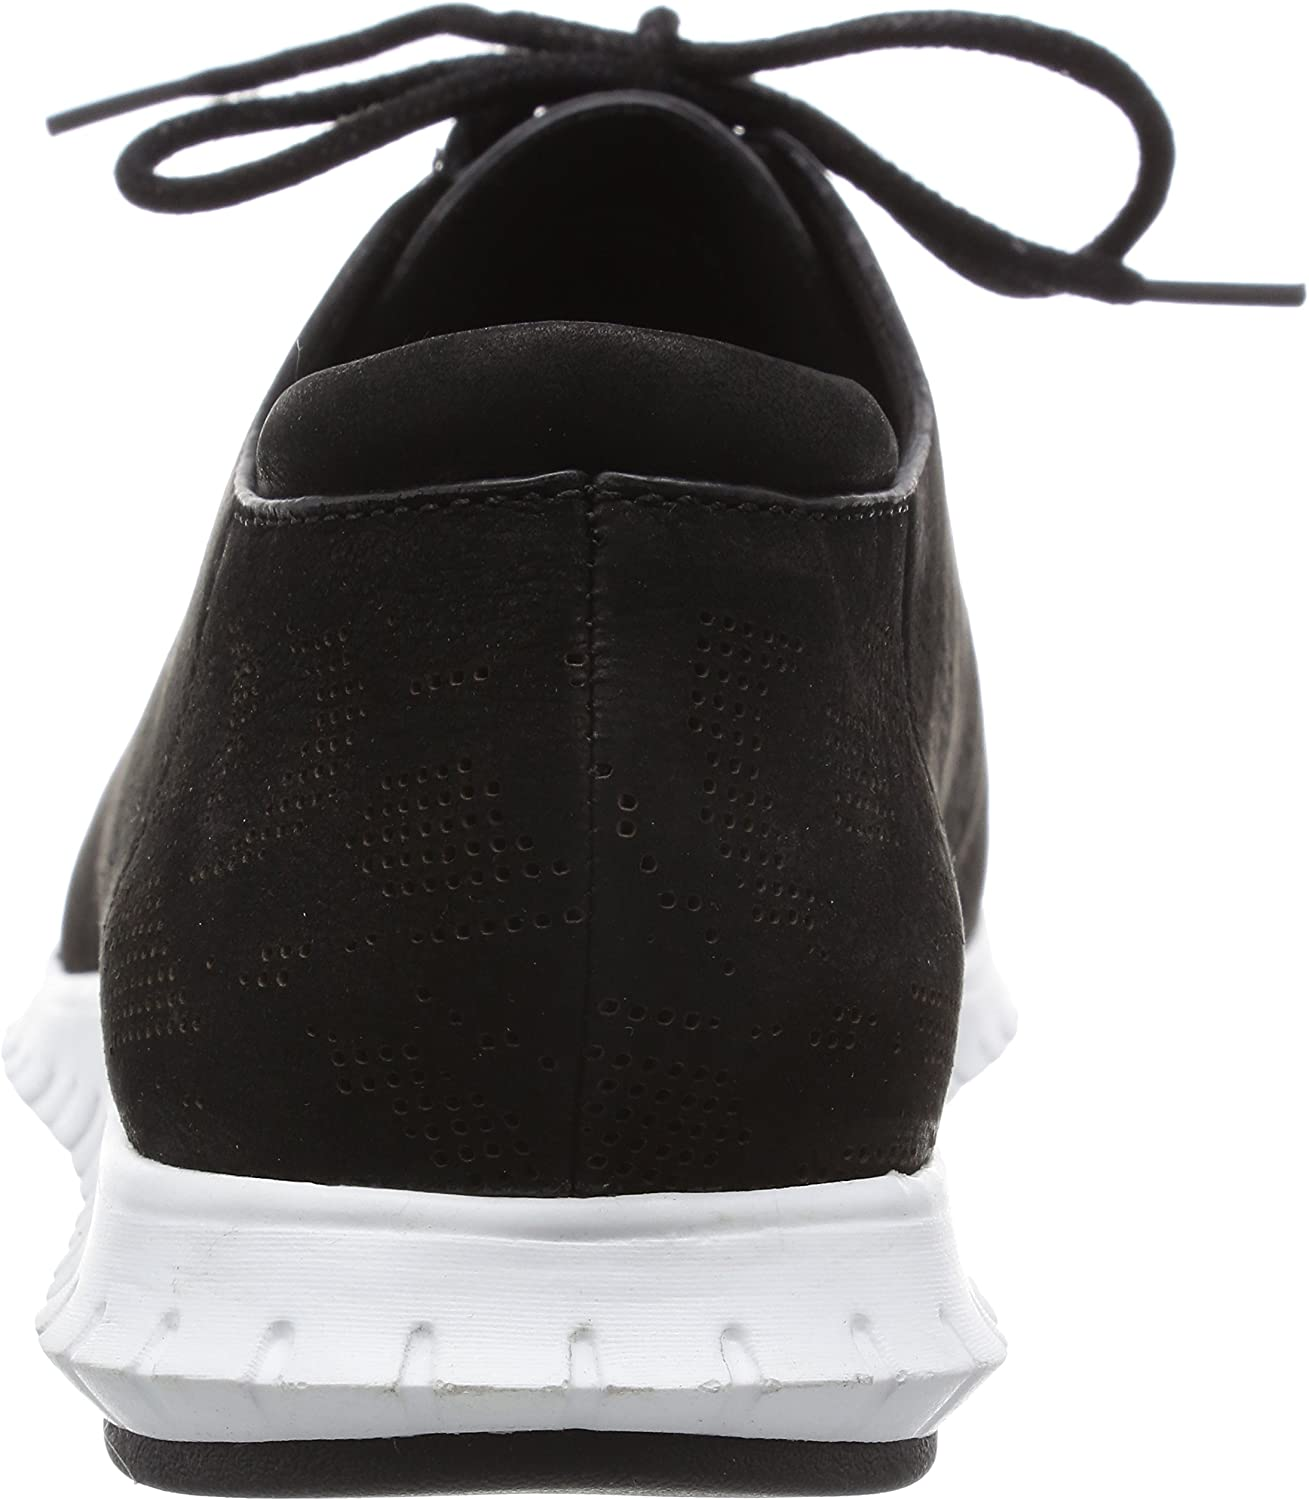 Cole Haan Women's Zerogrand Perforated Trainer Fashion Sneaker Black Perforated Nubuck/Optic White